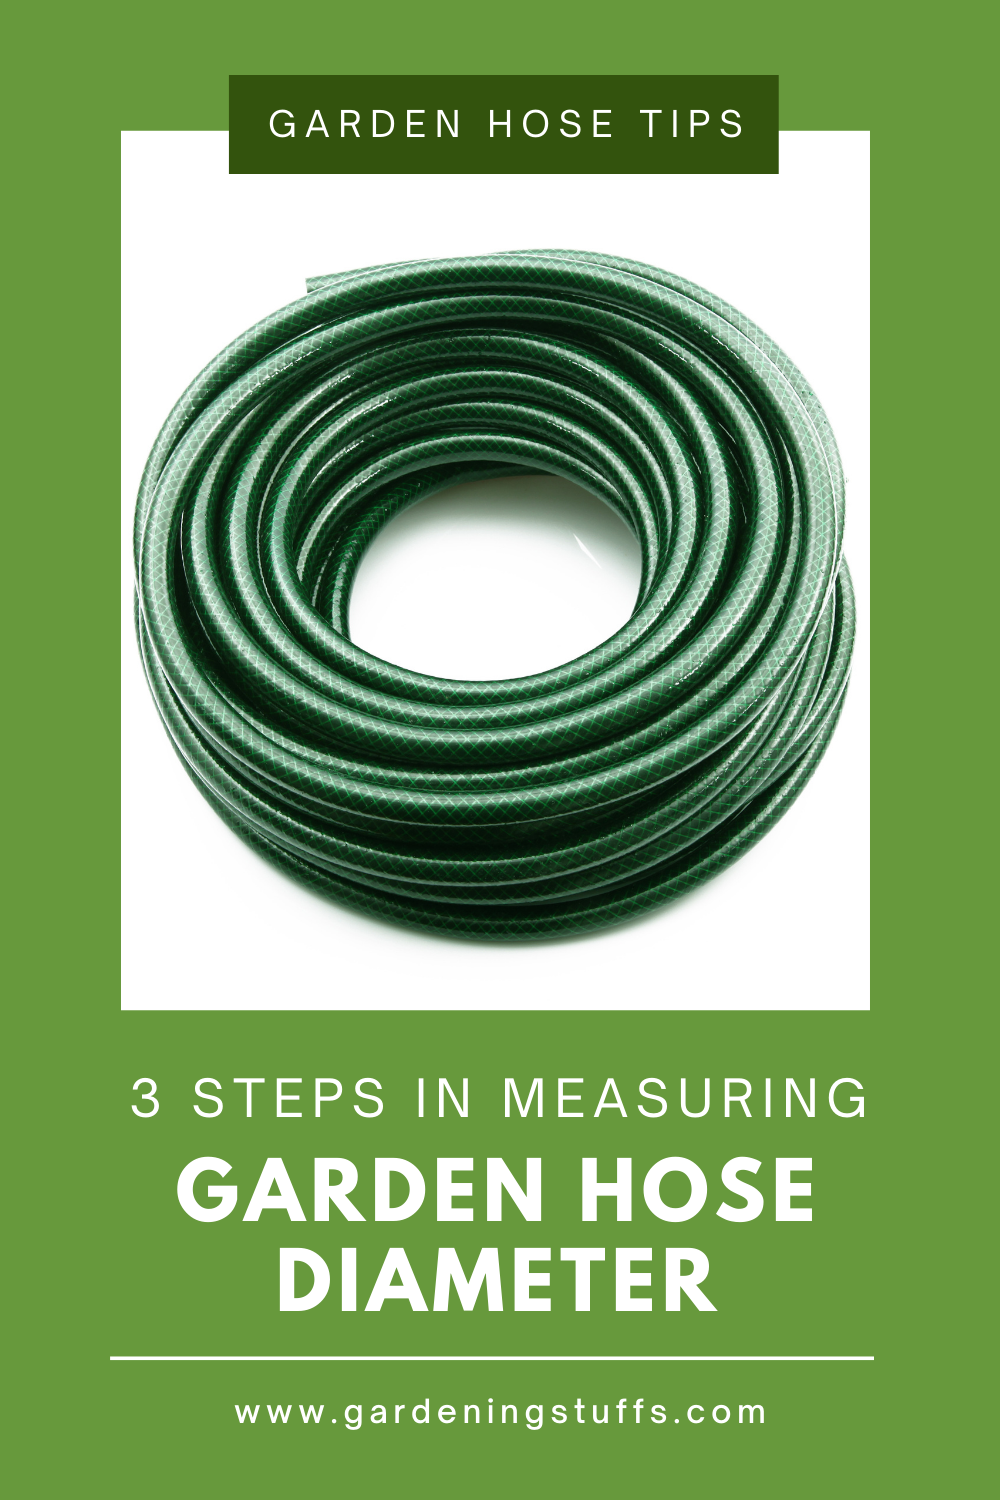 A garden hose that's of the right size will help increase your efficiency and reduce the effort needed in watering your garden. Learn how to measure the diameter of your hose the easy way by following these 3 steps in our article.